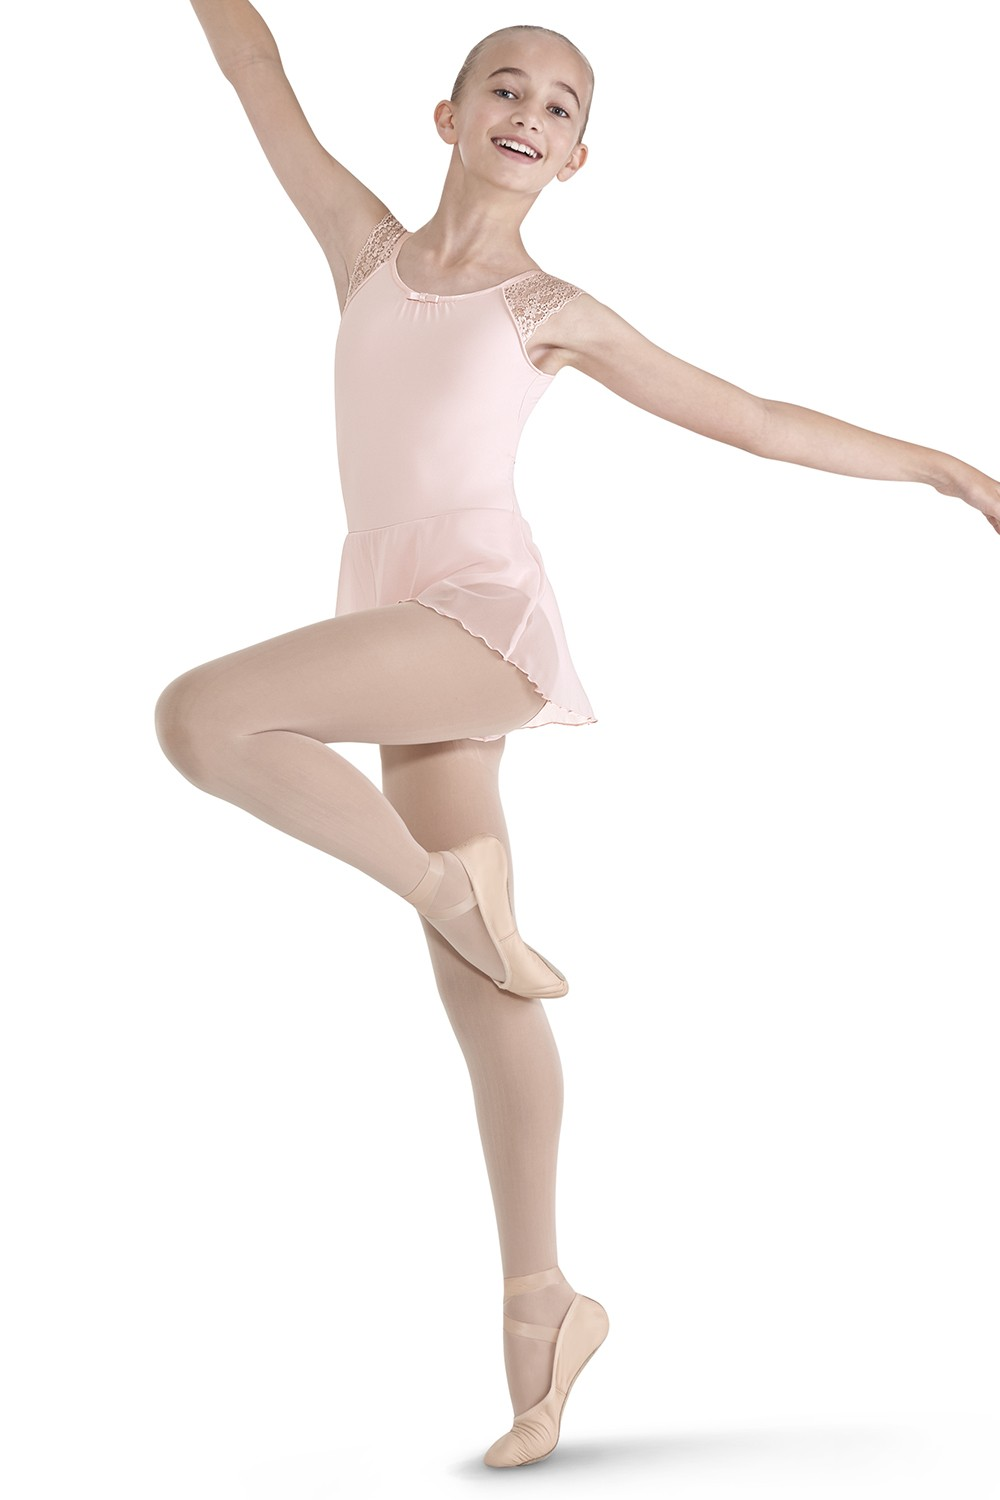 Justaucorps Avec Jupe, Épaules En Dentelle Girls Skirted Leotards